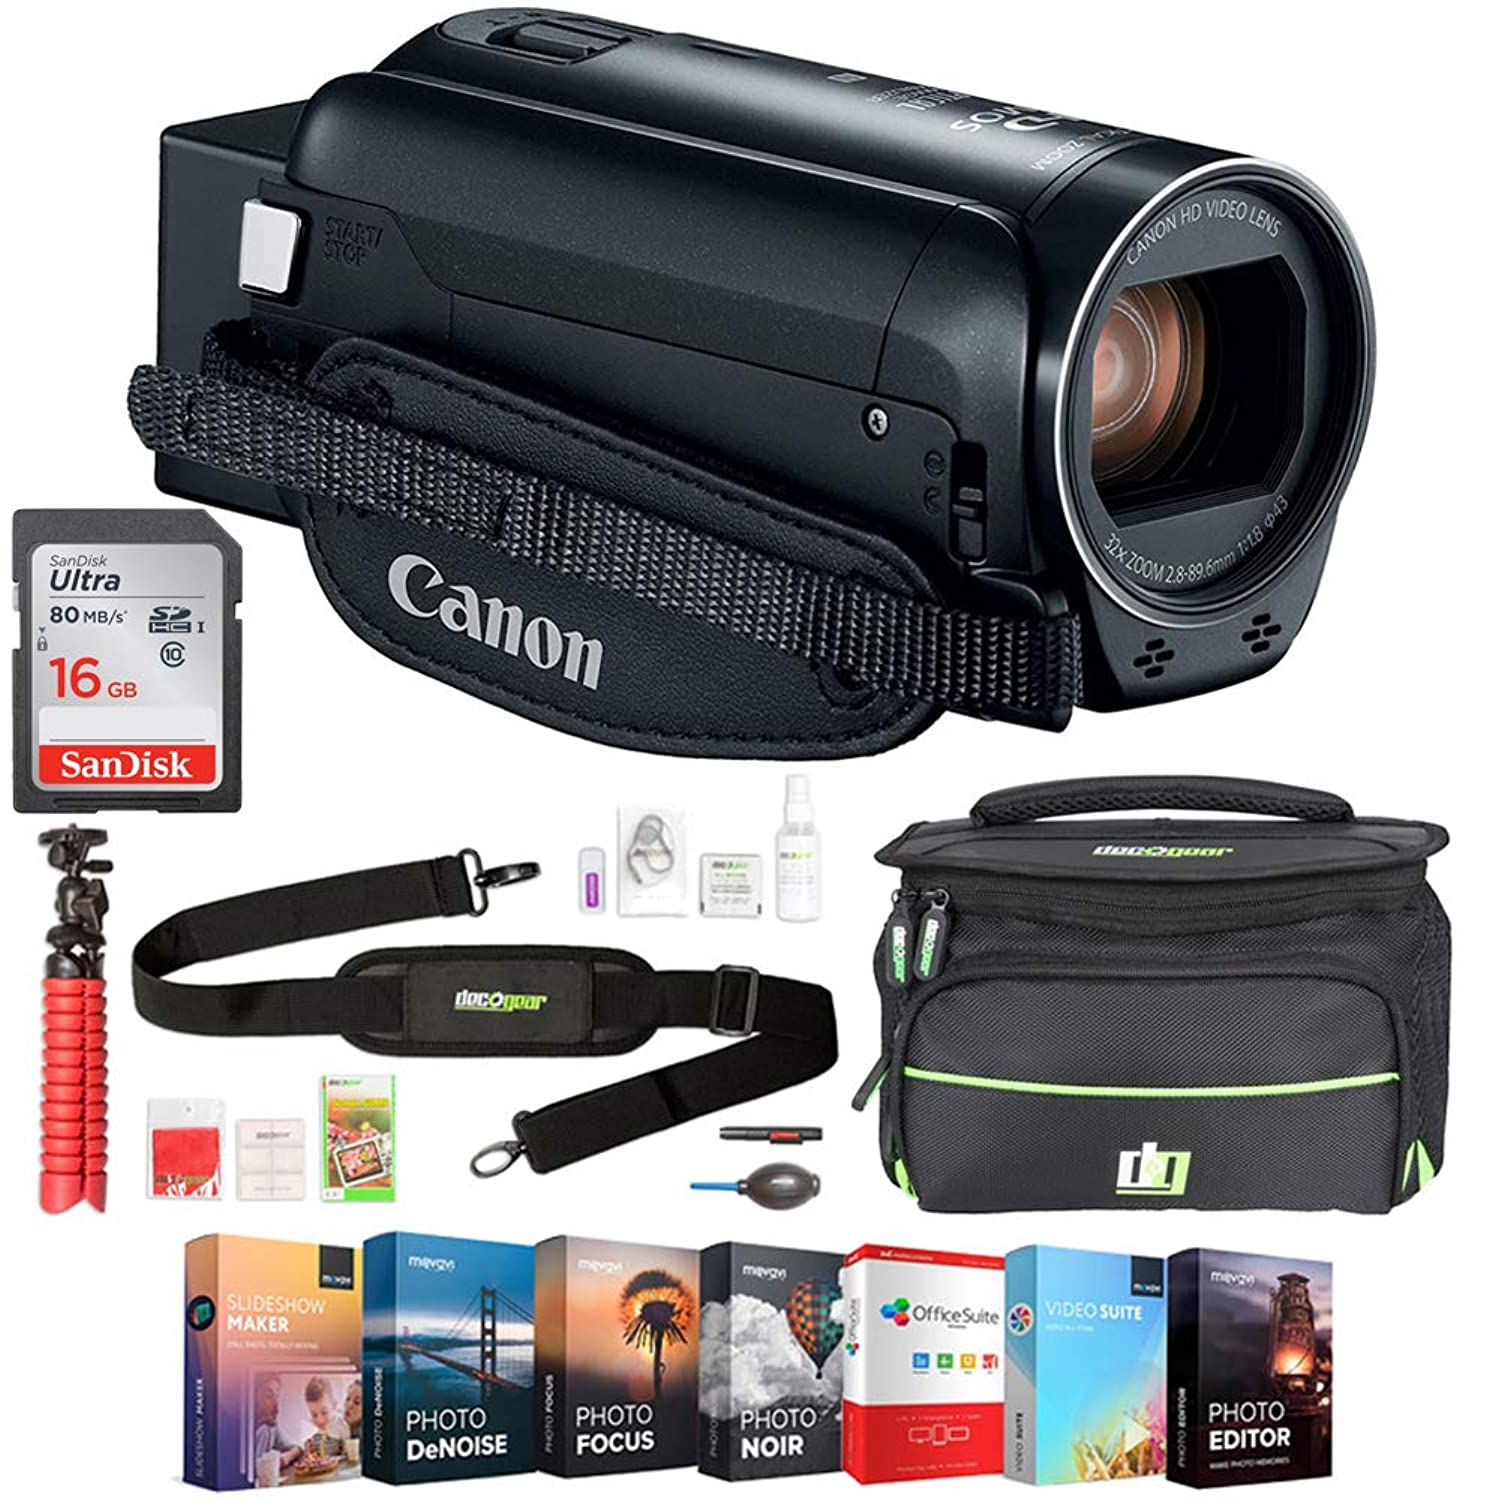 Canon VIXIA HF R82 Camcorder (1958C002) 3.8MP Full HD CMOS, 57x Advanced Zoom - Black w/Bundle Includes, Deco Gear Camera Bag (Medium) w/Accessory Kit, 16GB Memory Card & Professional Editing Suite